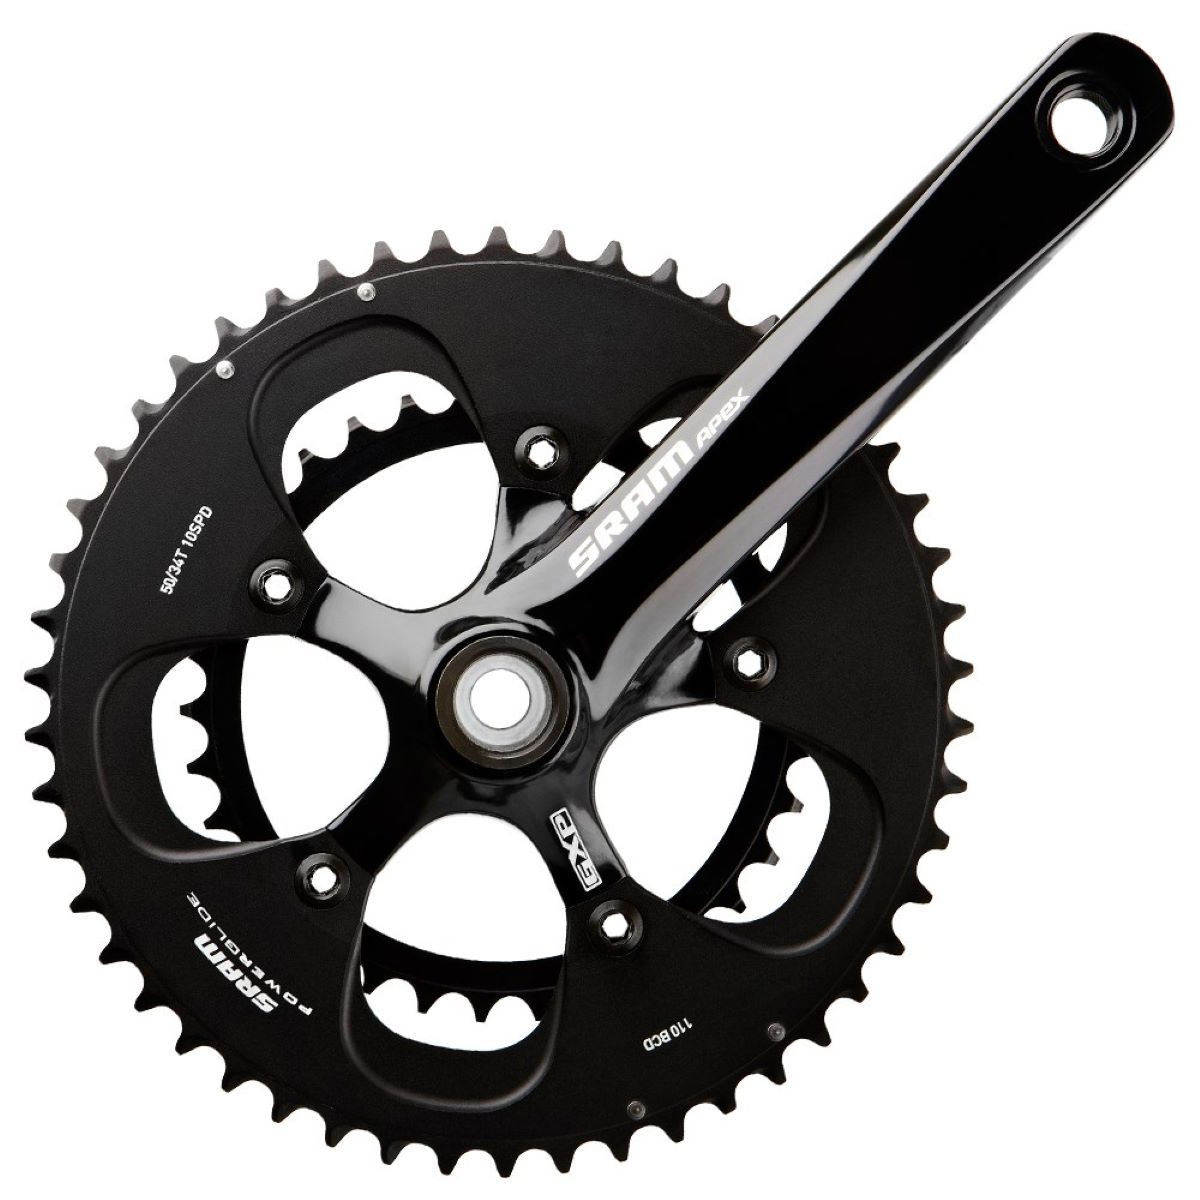 Sram Apex Compact Chainset With White Decals - 50-34t 175mm Black